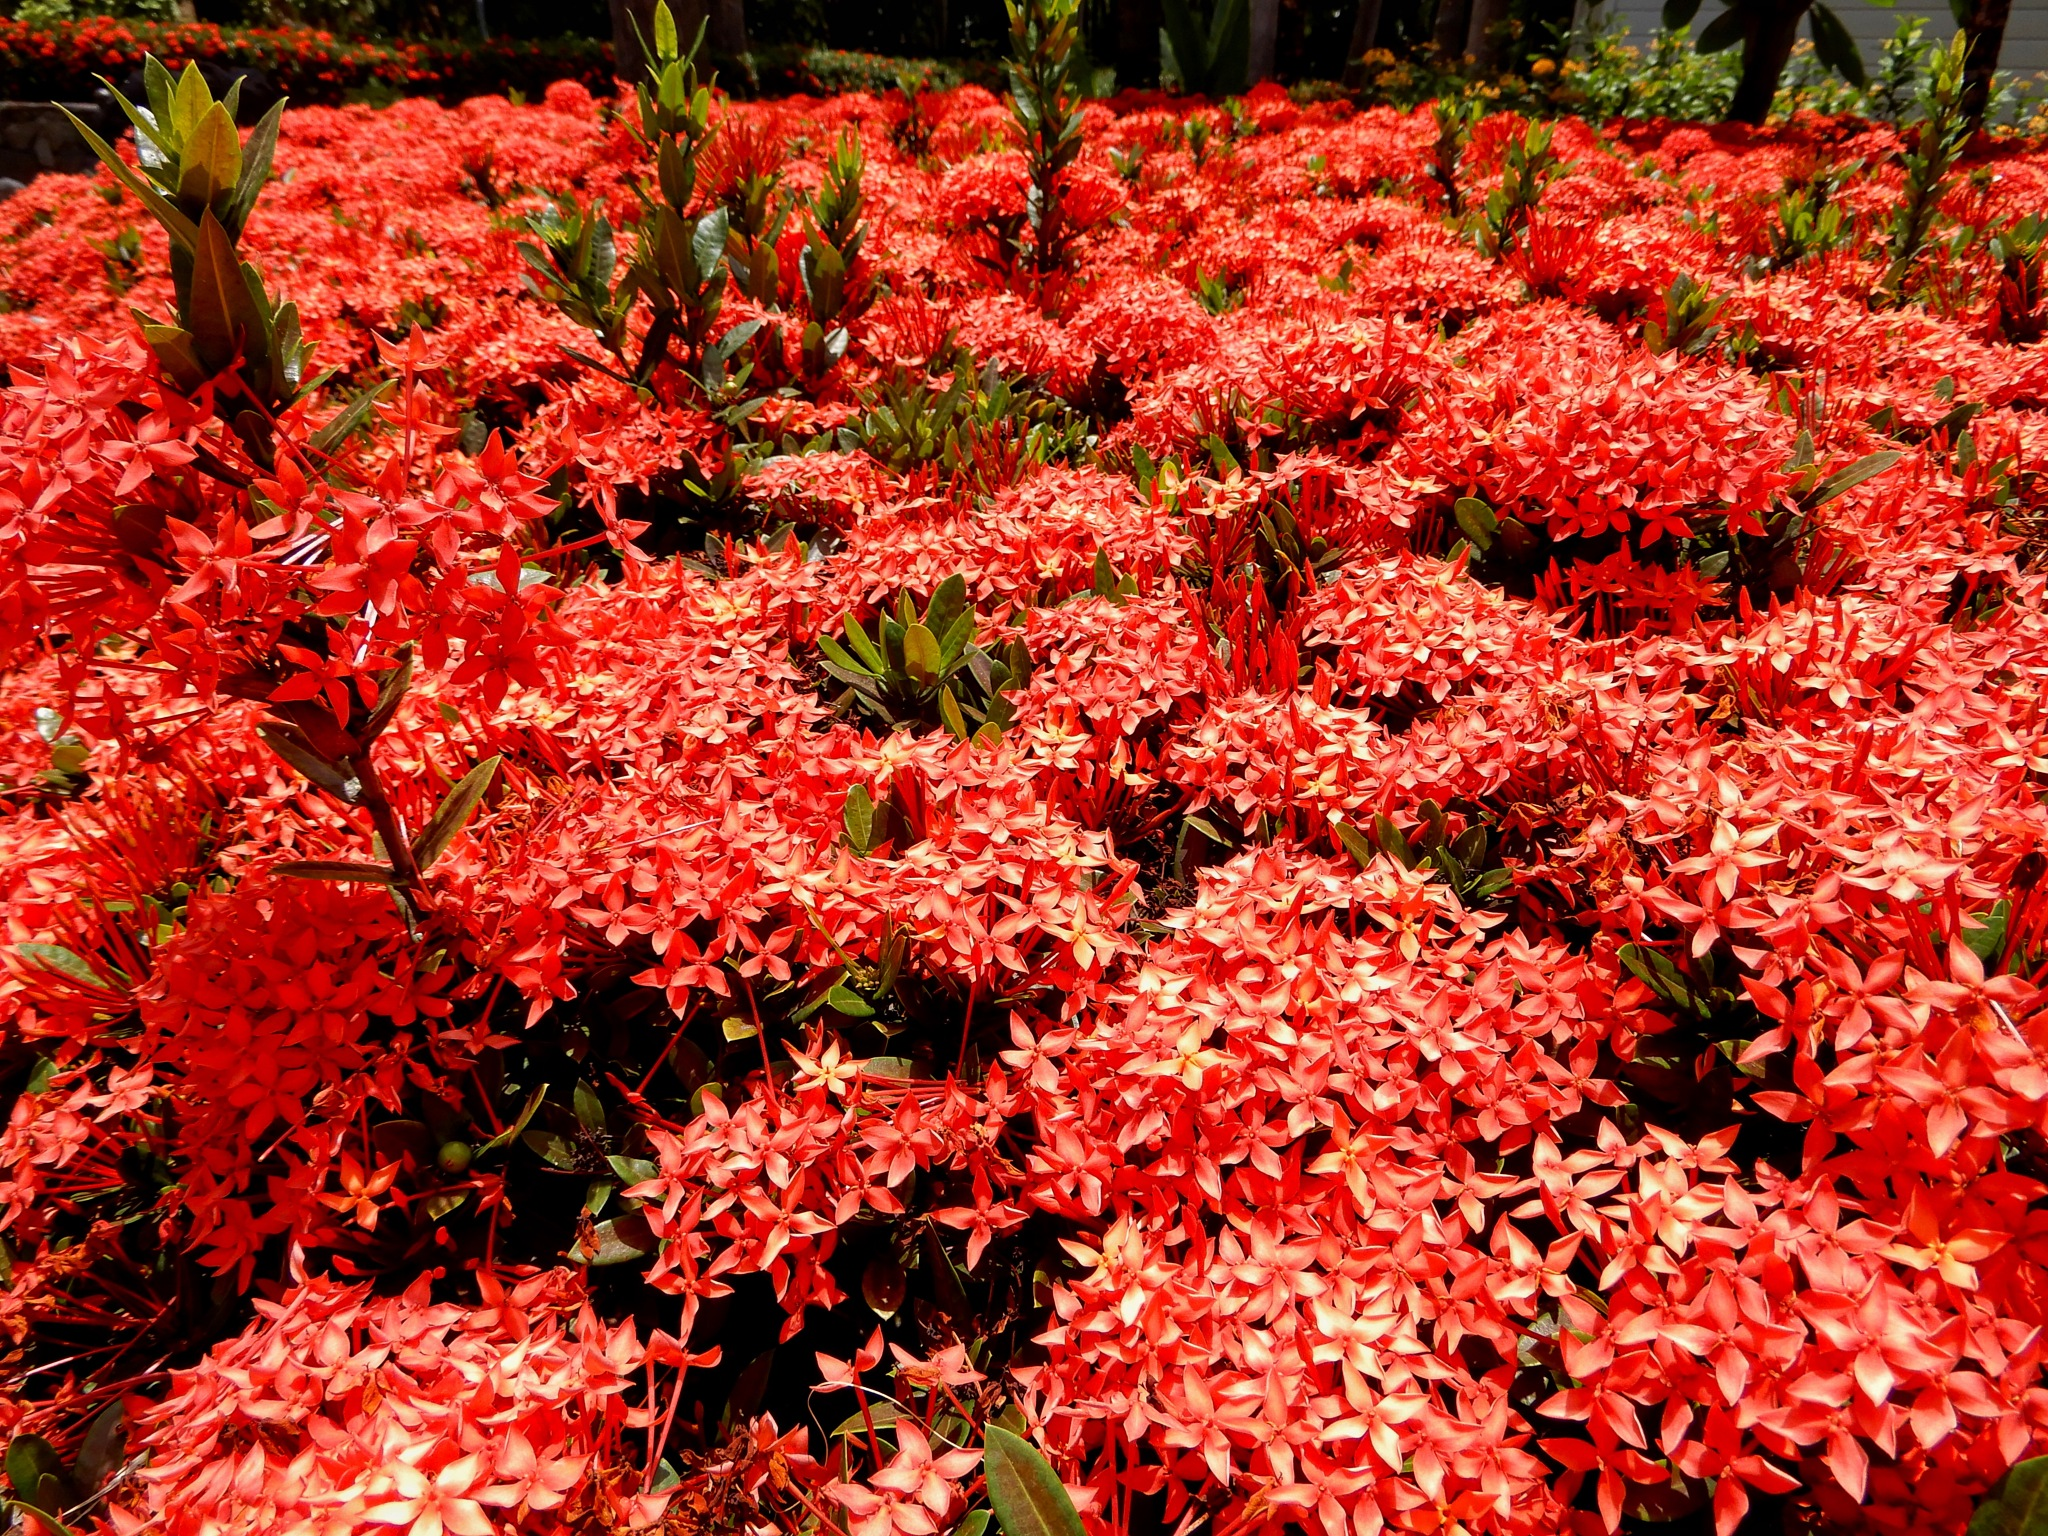 A lush red ocean  by Jackie06